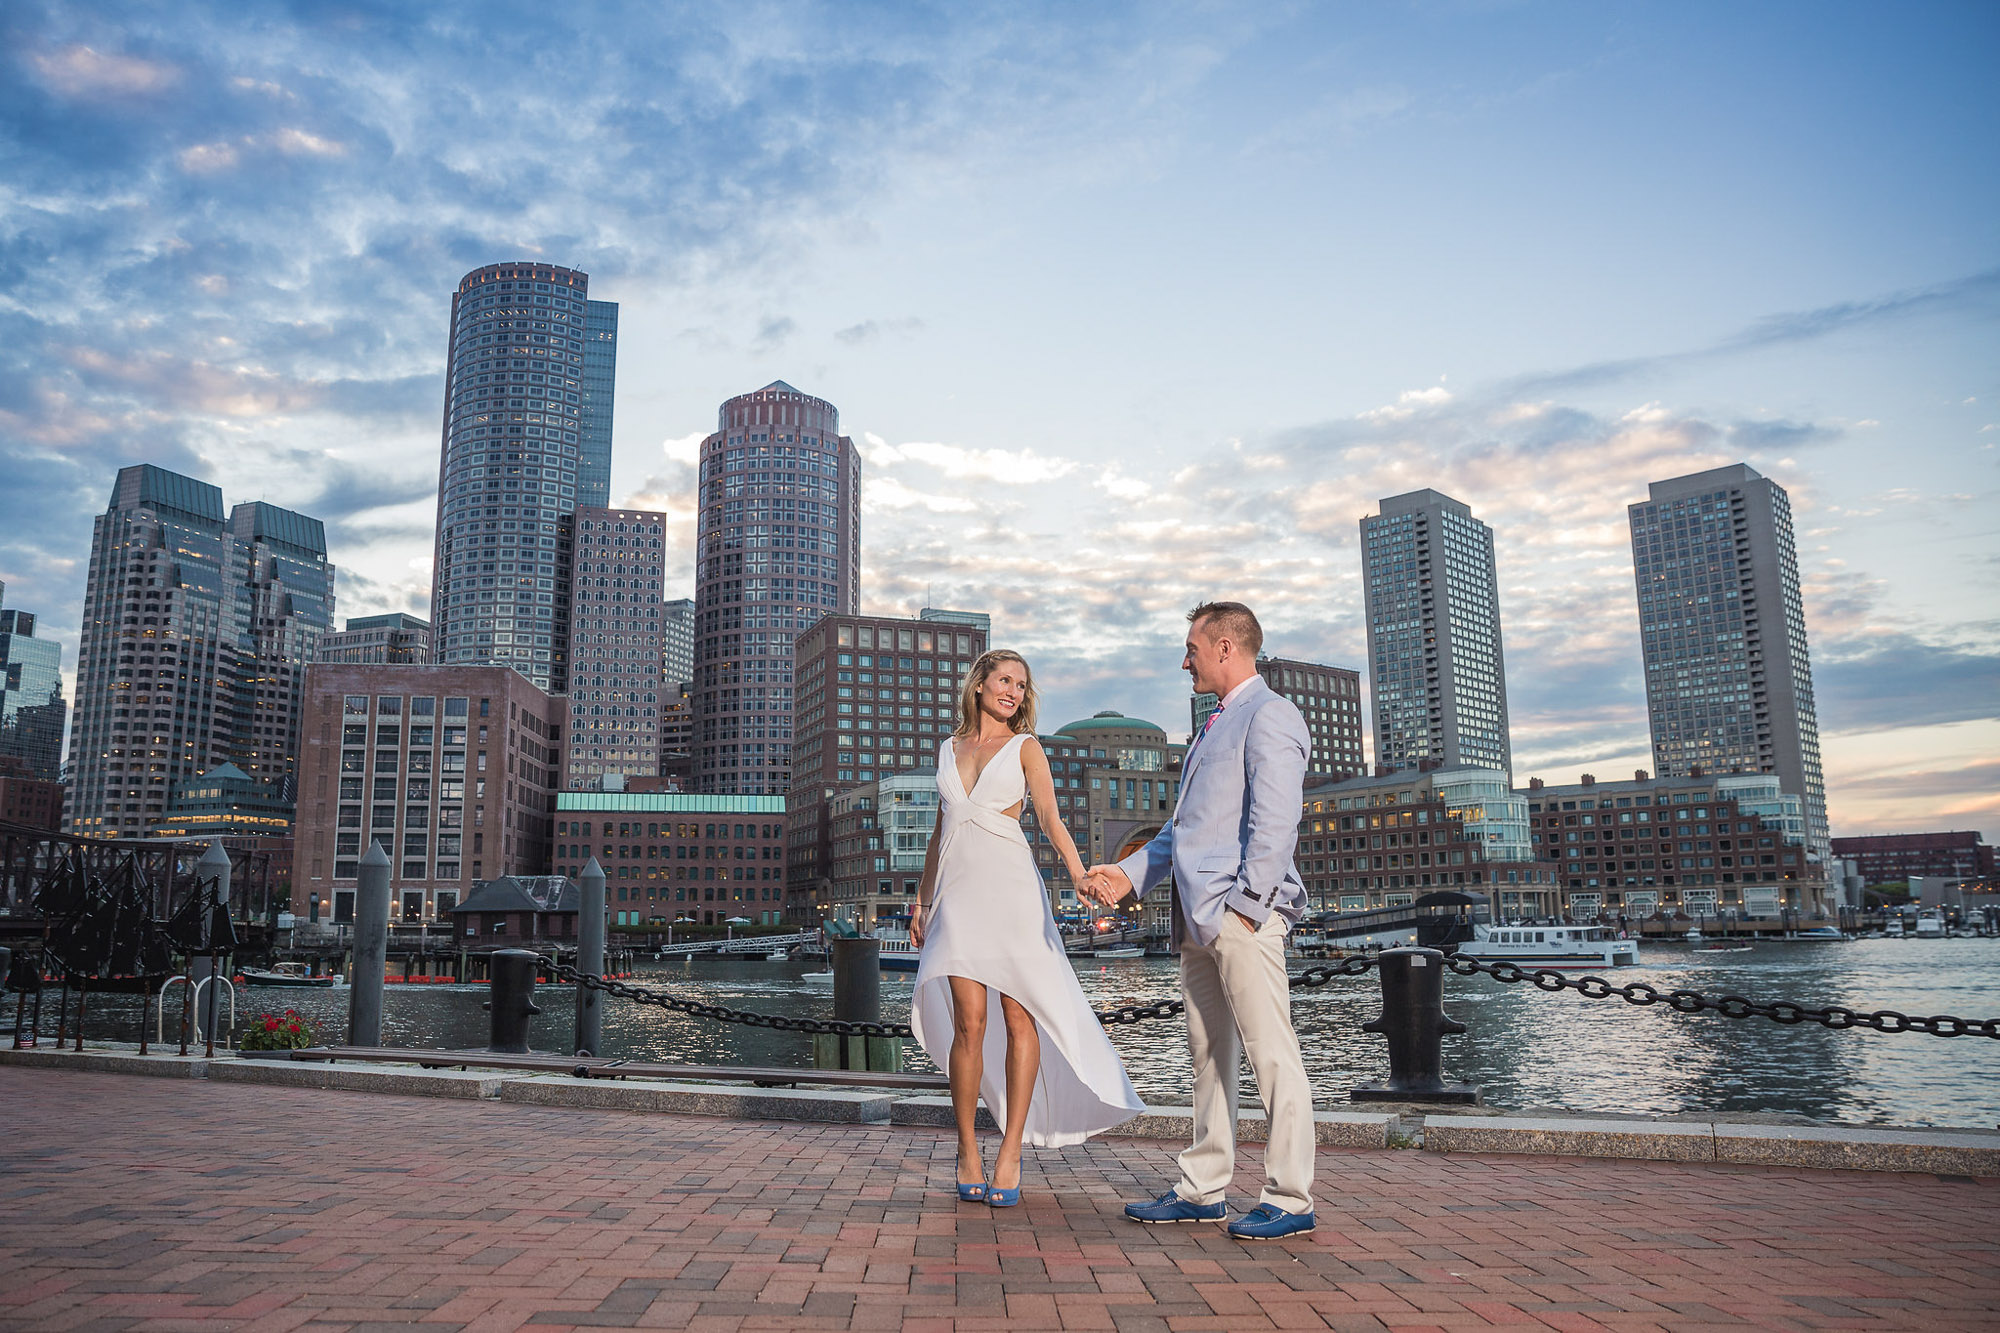 boston-wedding-photographer-seaport-boston.jpg